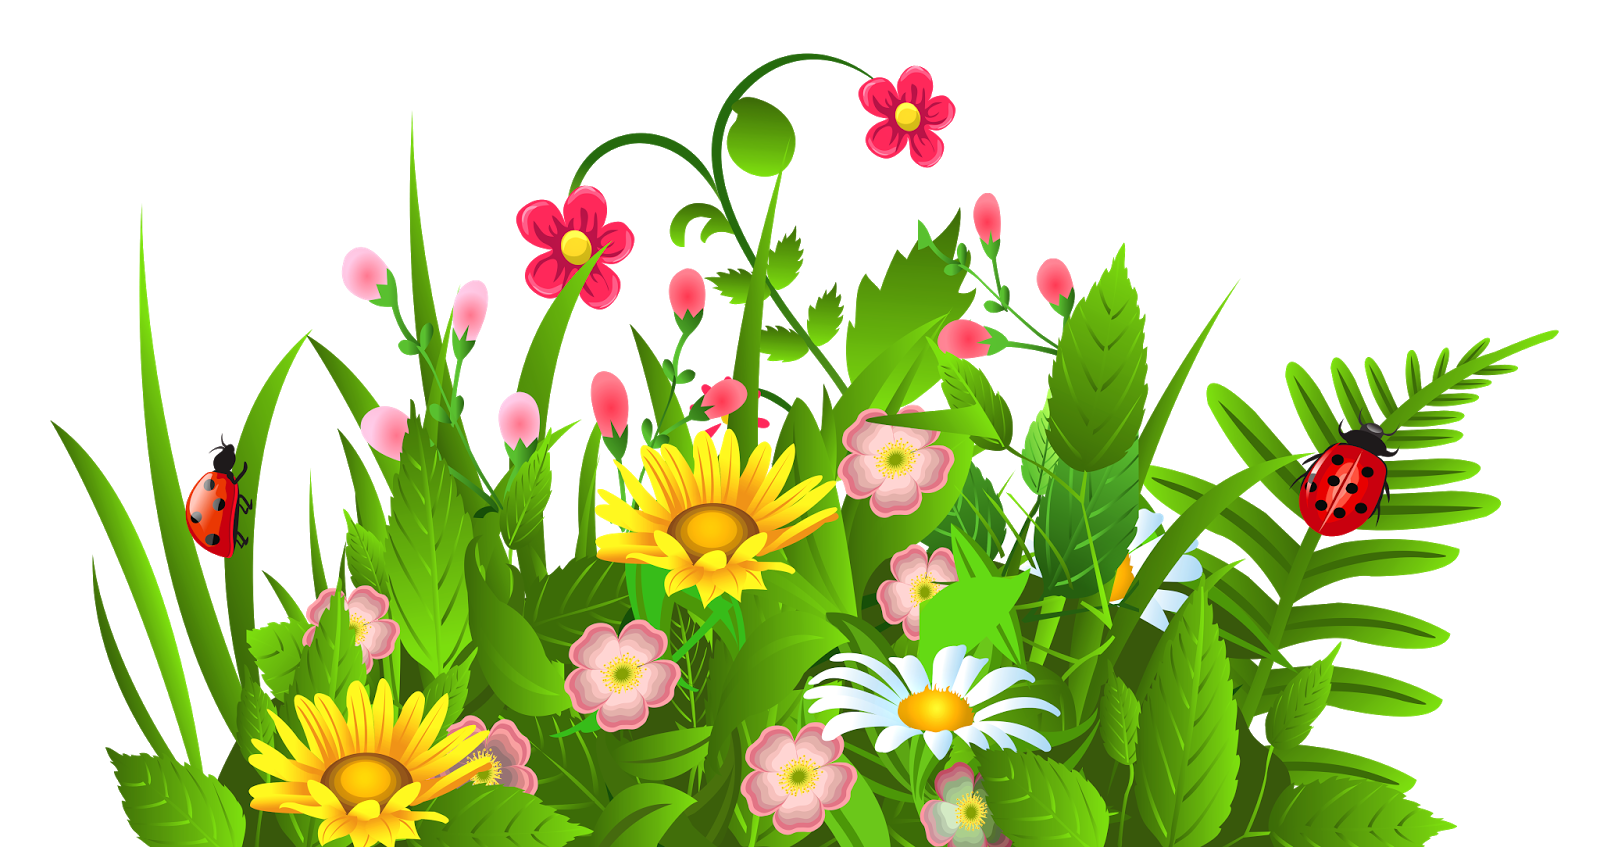 Sales clipart flower. Free cute garden cliparts